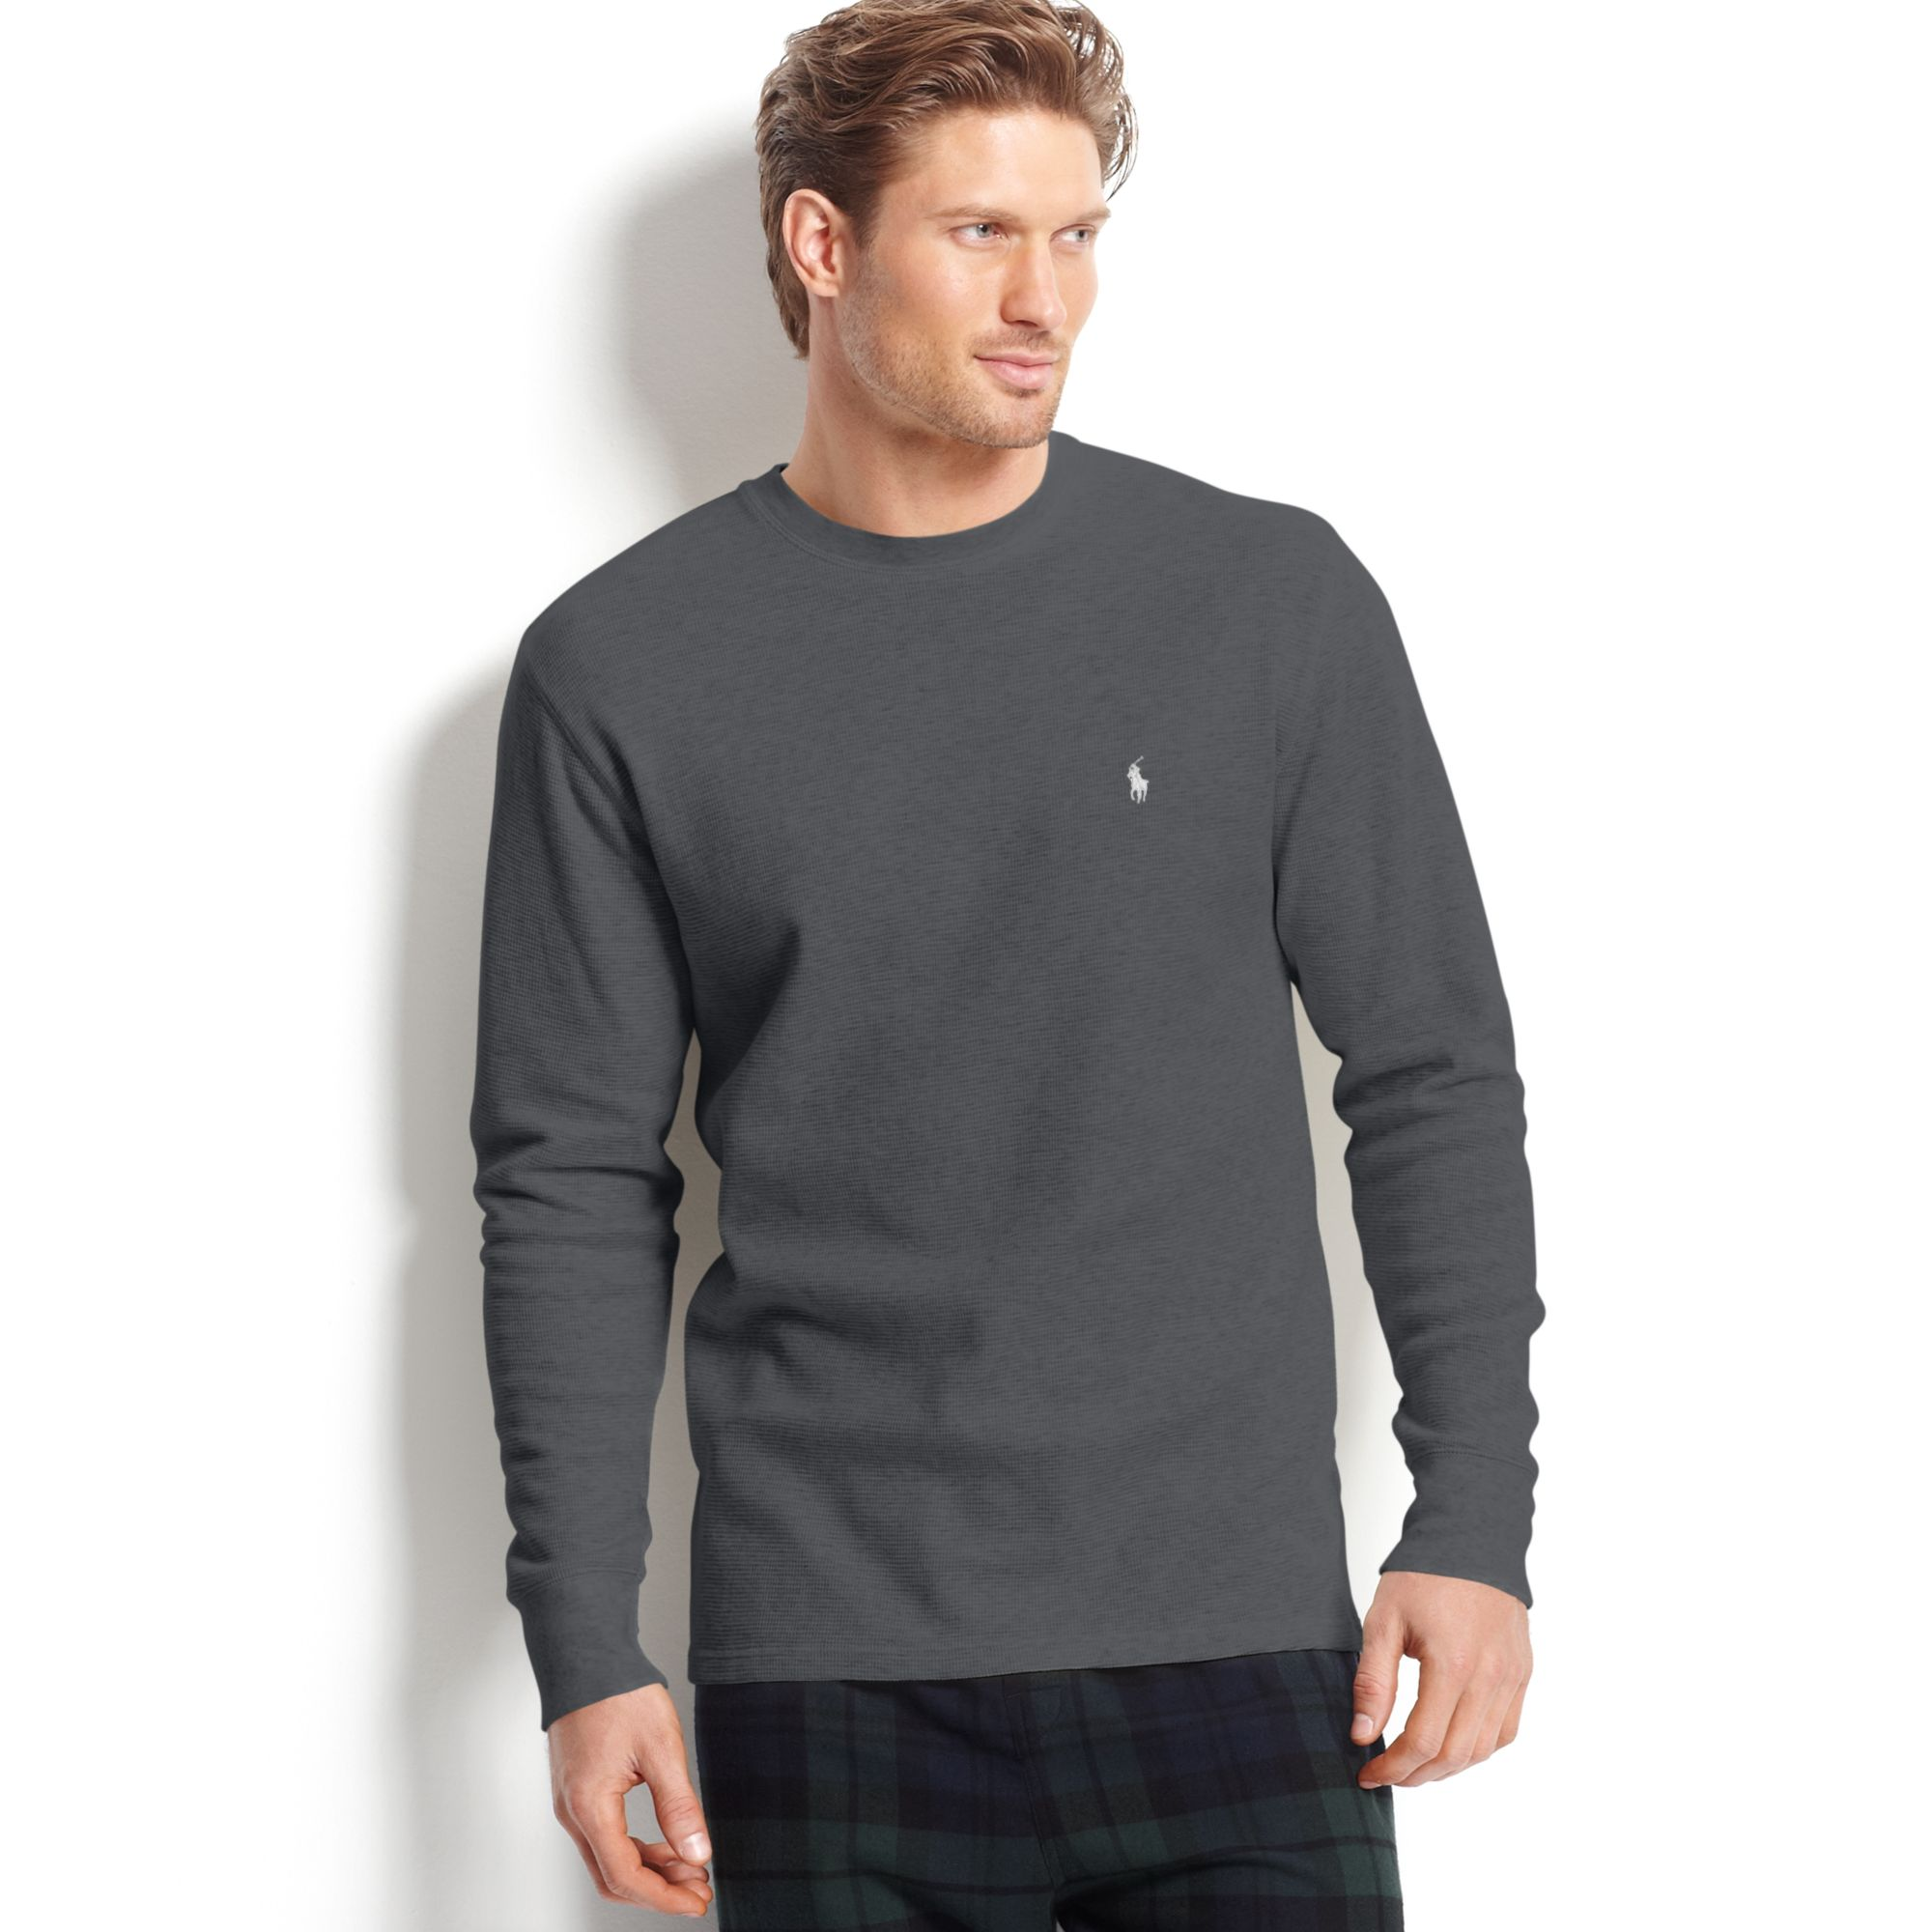 ralph lauren long sleeve crew neck waffleknit thermal tshirt in gray for men lyst. Black Bedroom Furniture Sets. Home Design Ideas